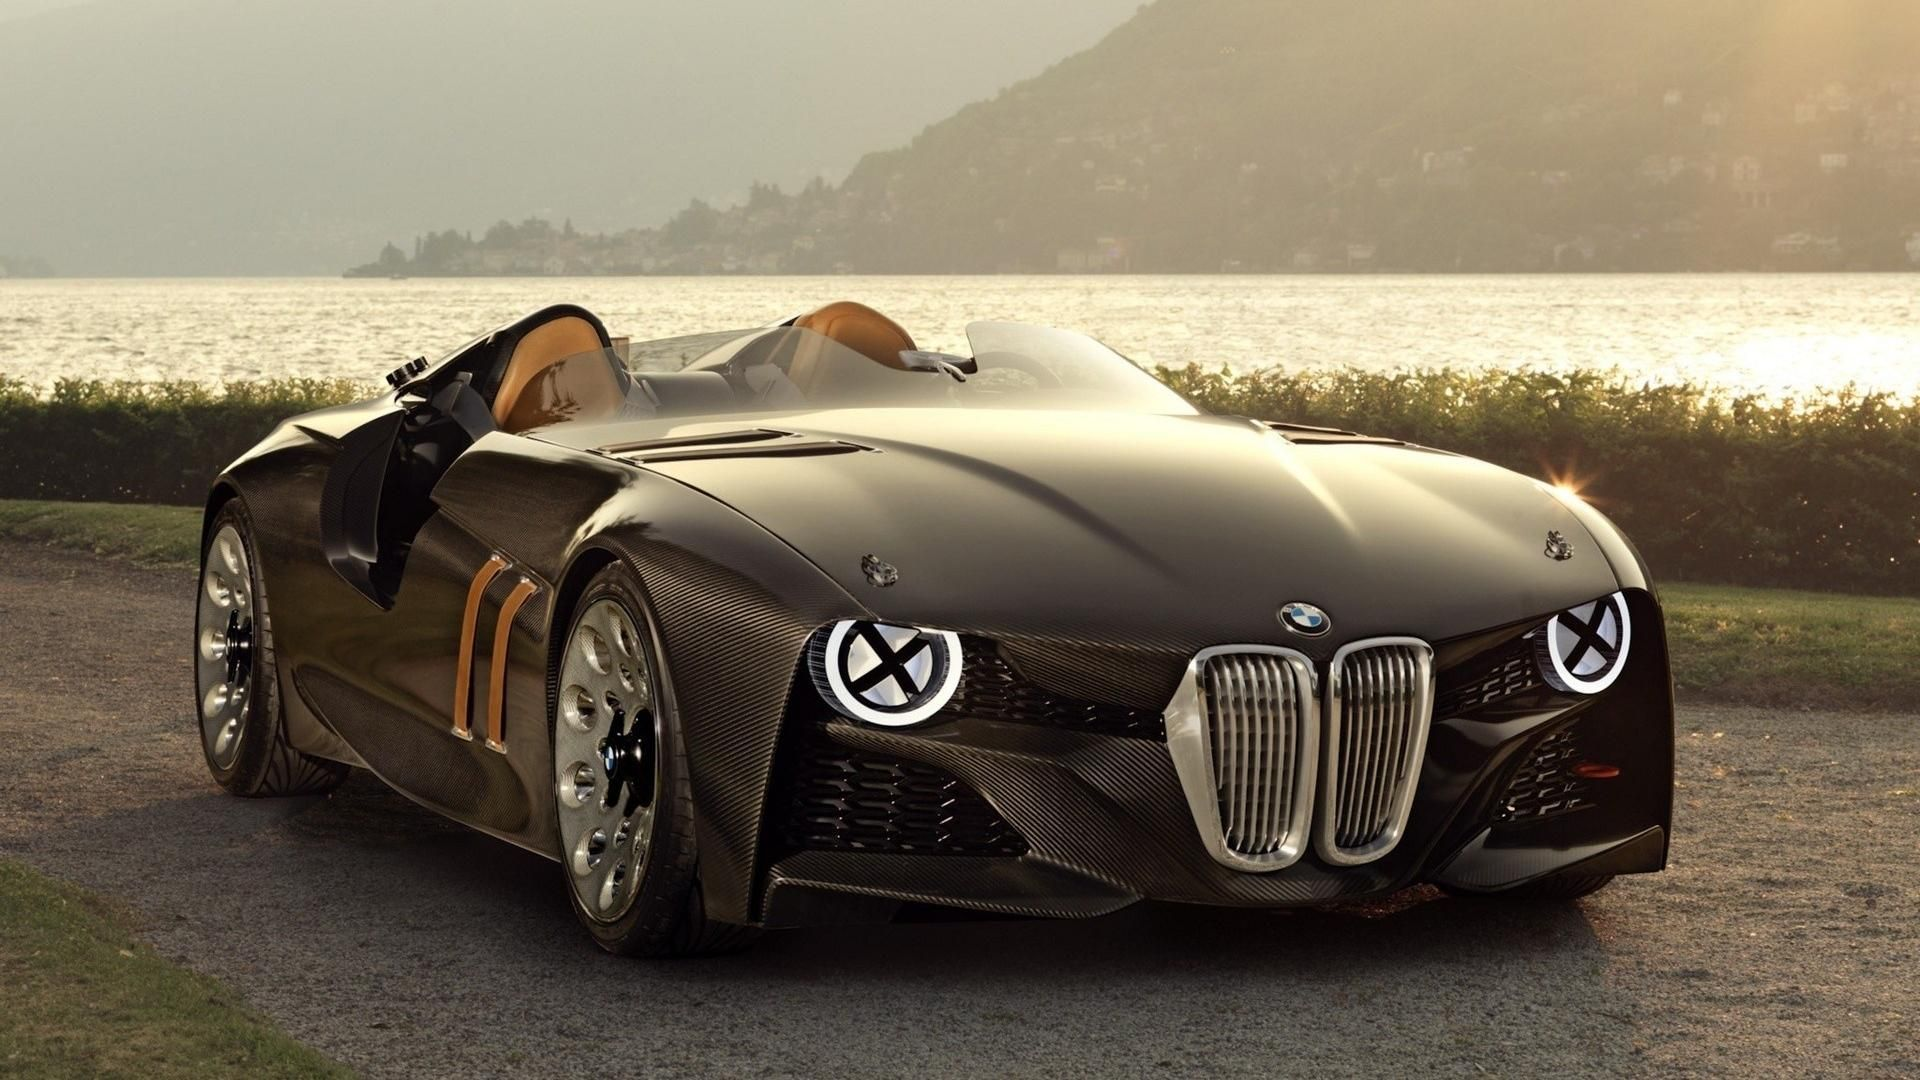 Bmw Cars Wallpapers Hd Viewing Gallery 1920x1080PX  Custom Car